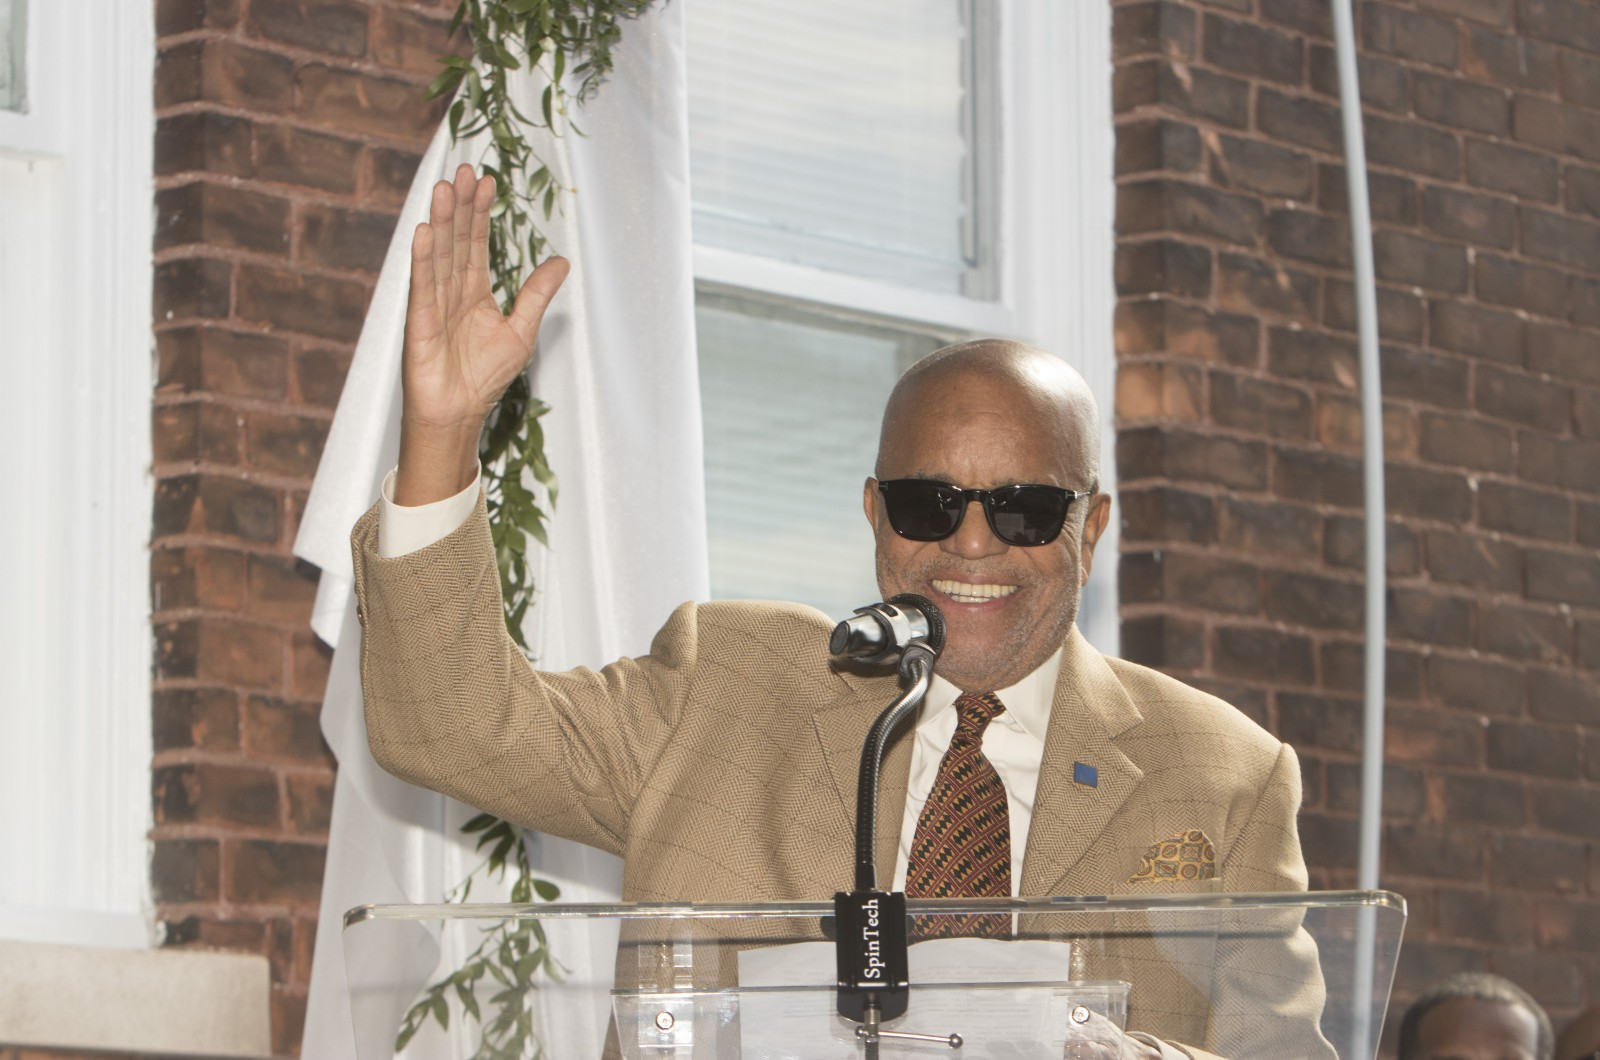 Berry Gordy, founder of Motown Records, speaks during the groundbreaking of phase one of the Motown Museum's highly anticipated expansion.